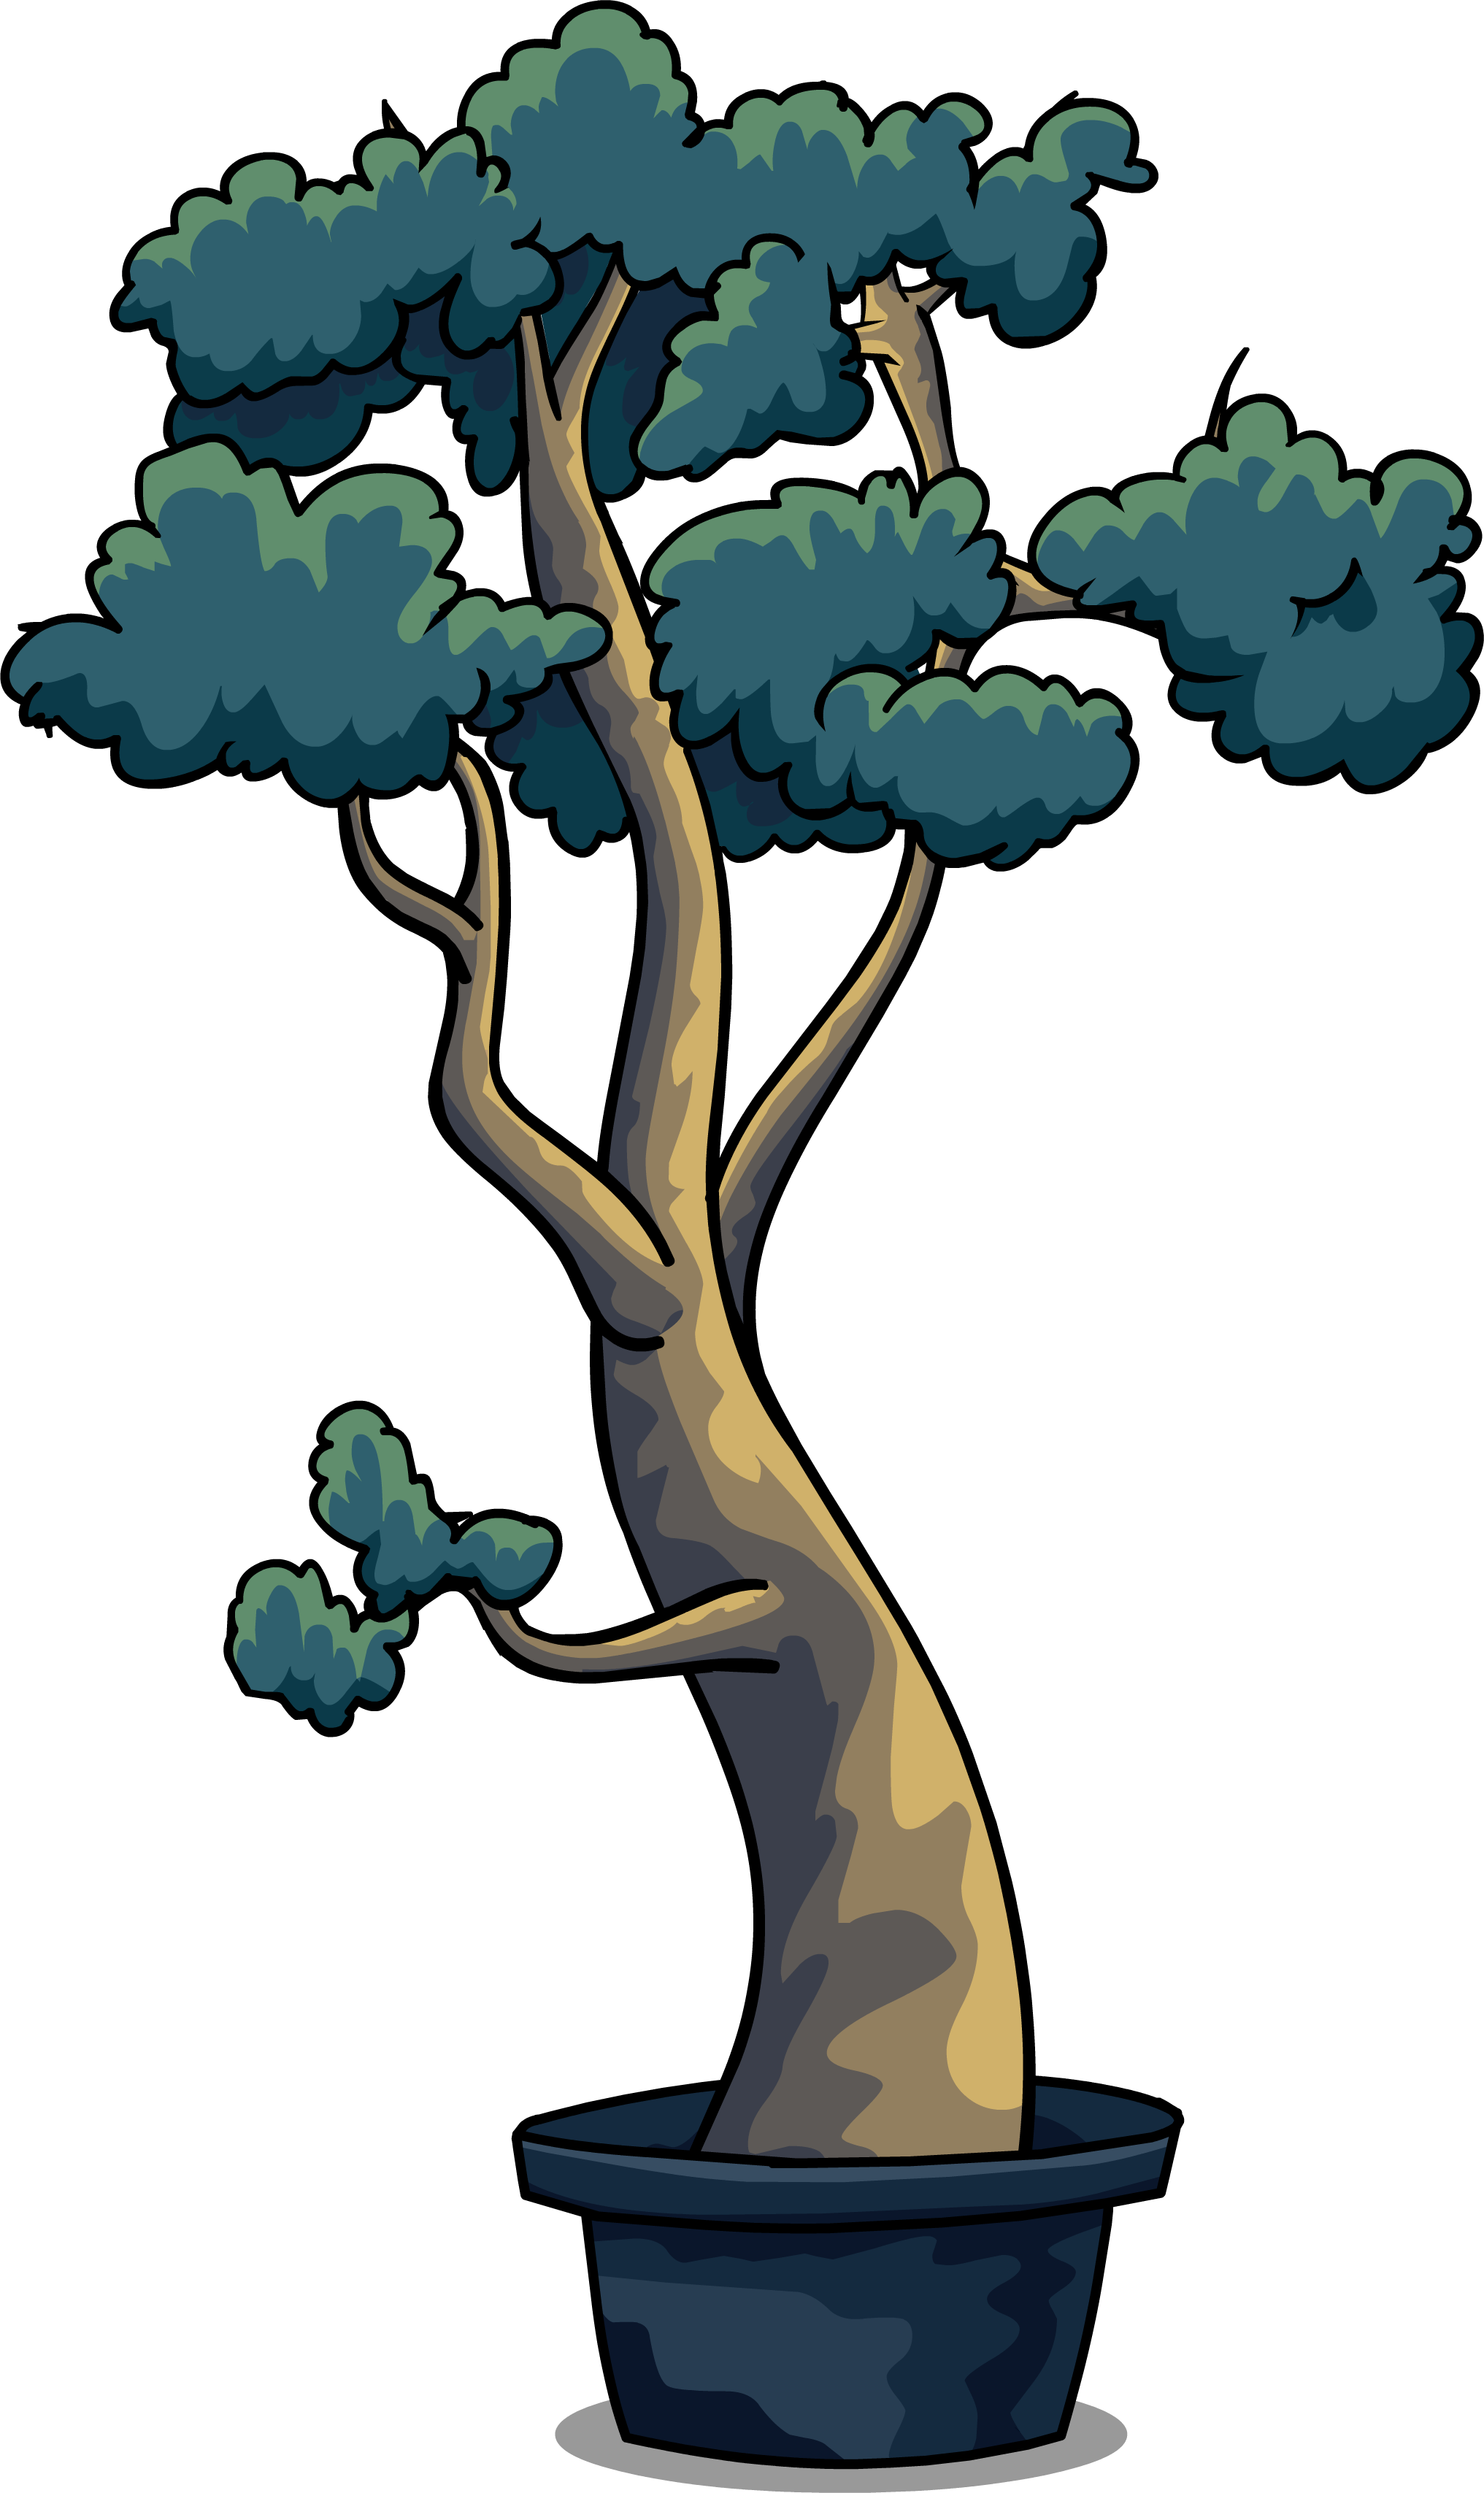 Growing plants club penguin. Growth clipart tree sprout